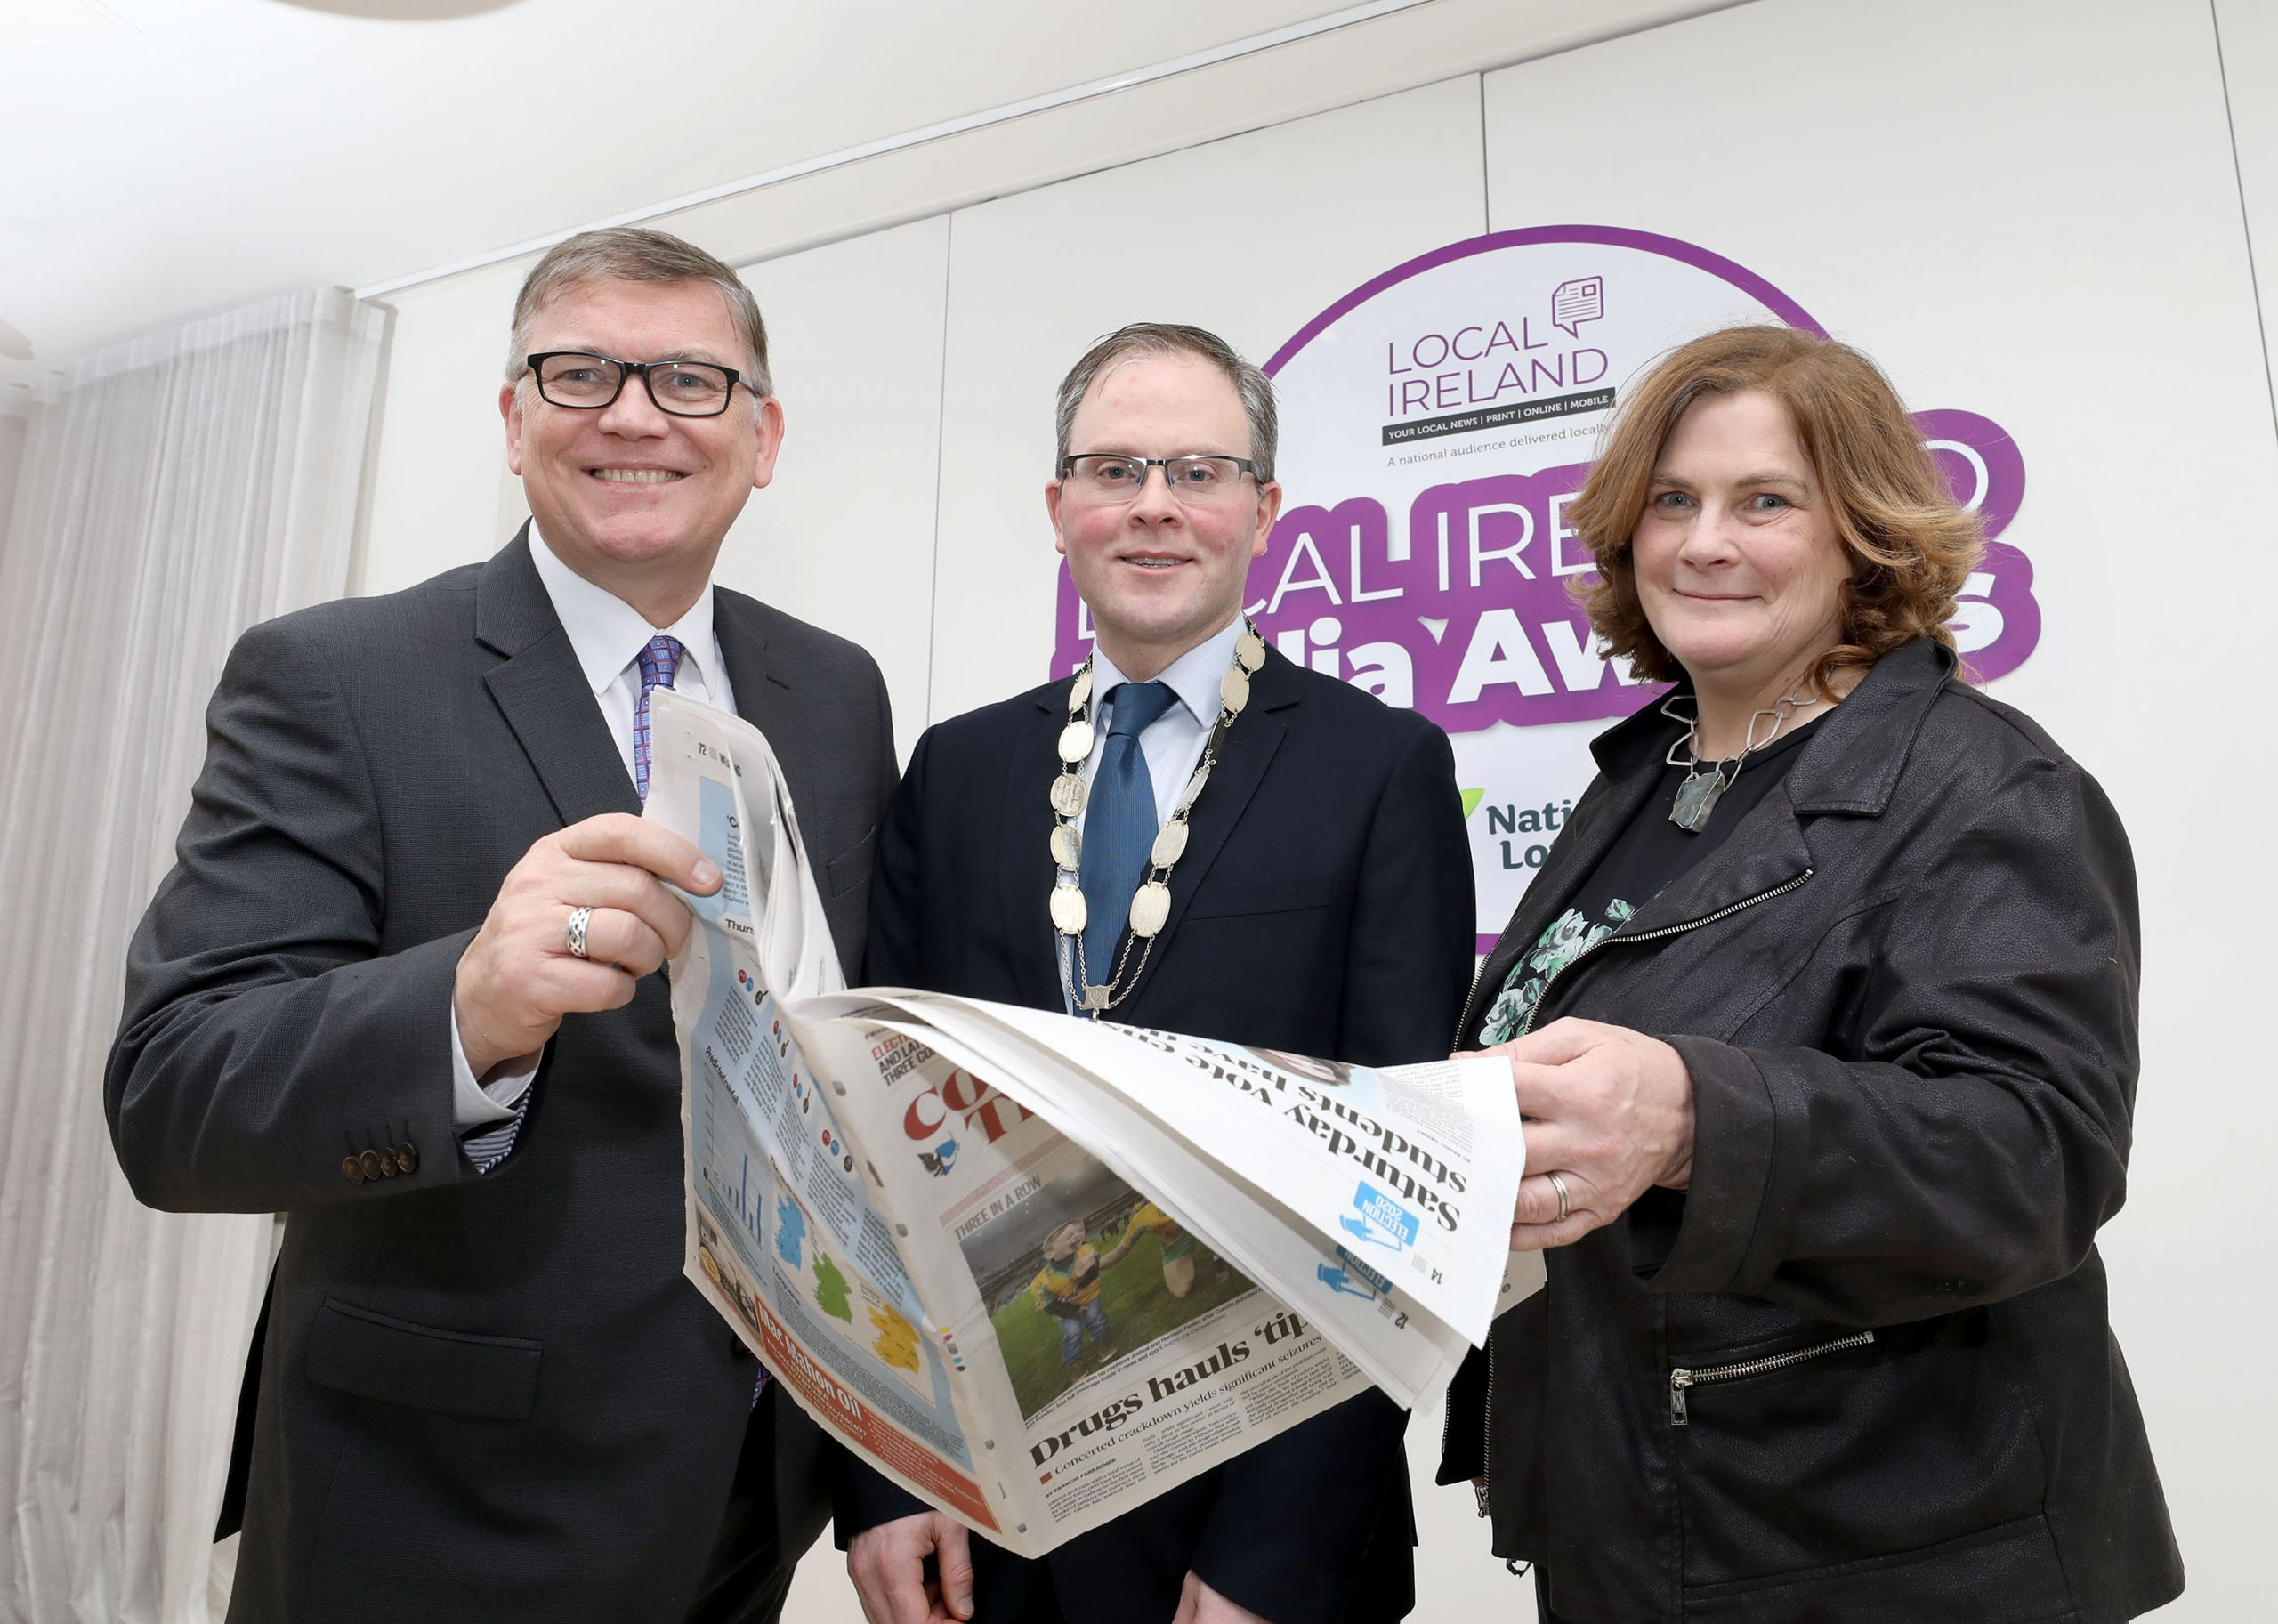 Applications Open For Local Ireland Media Awards